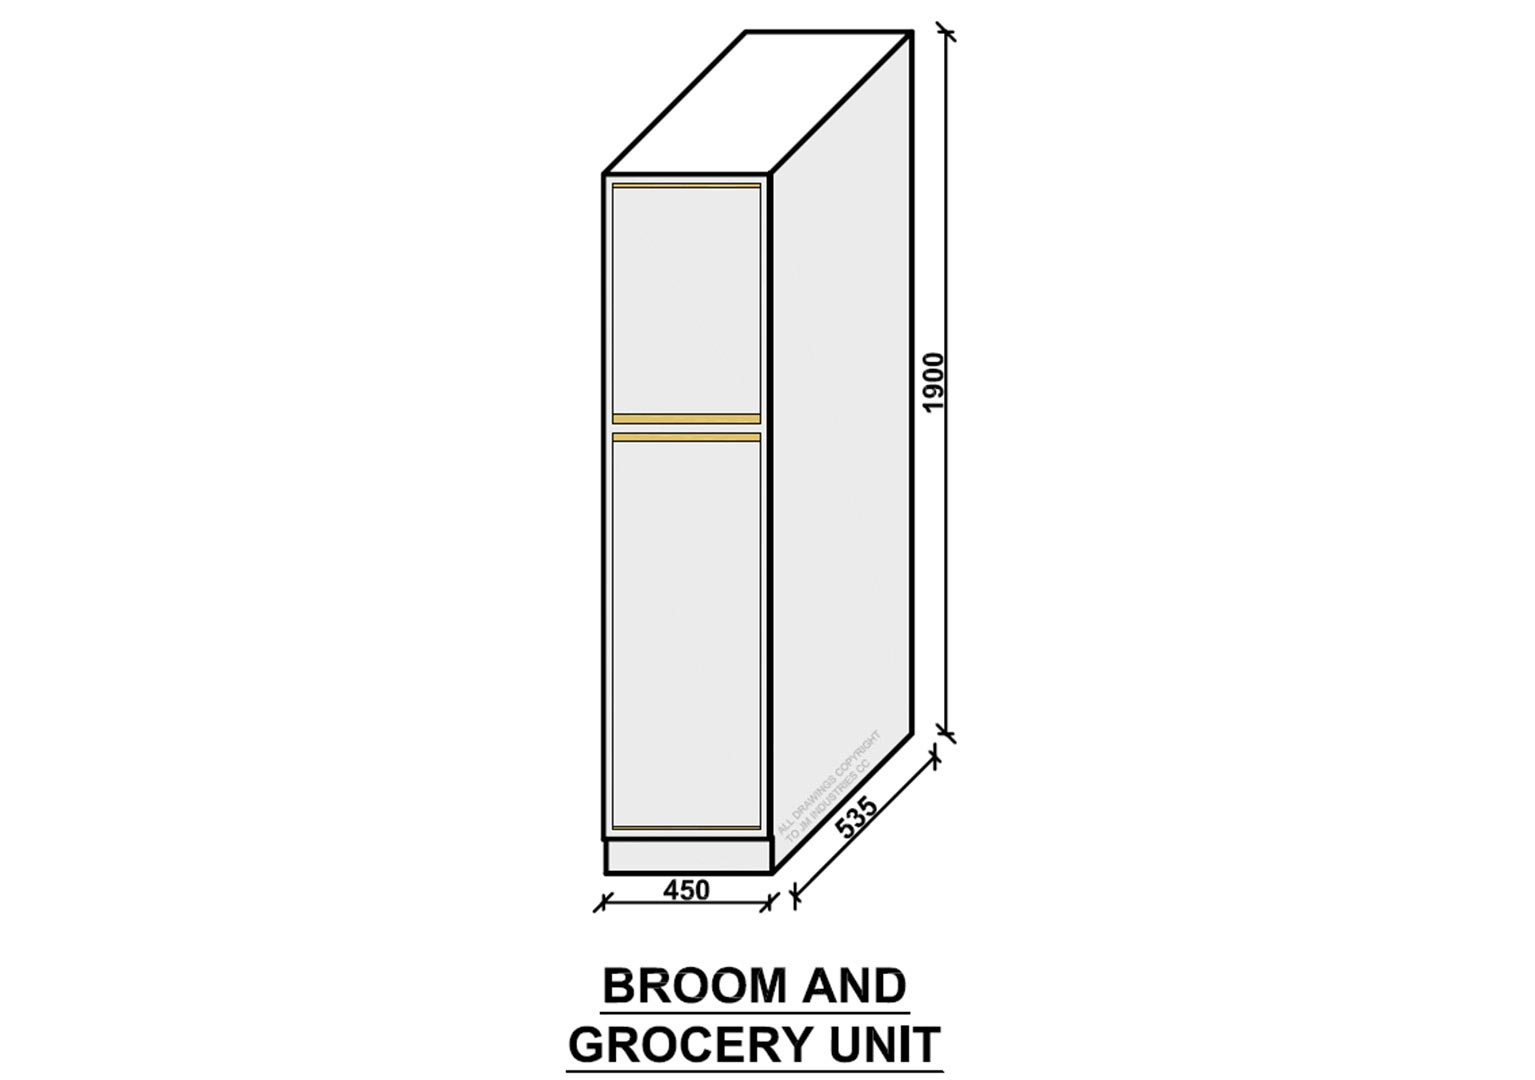 Broom and Grocery Unit